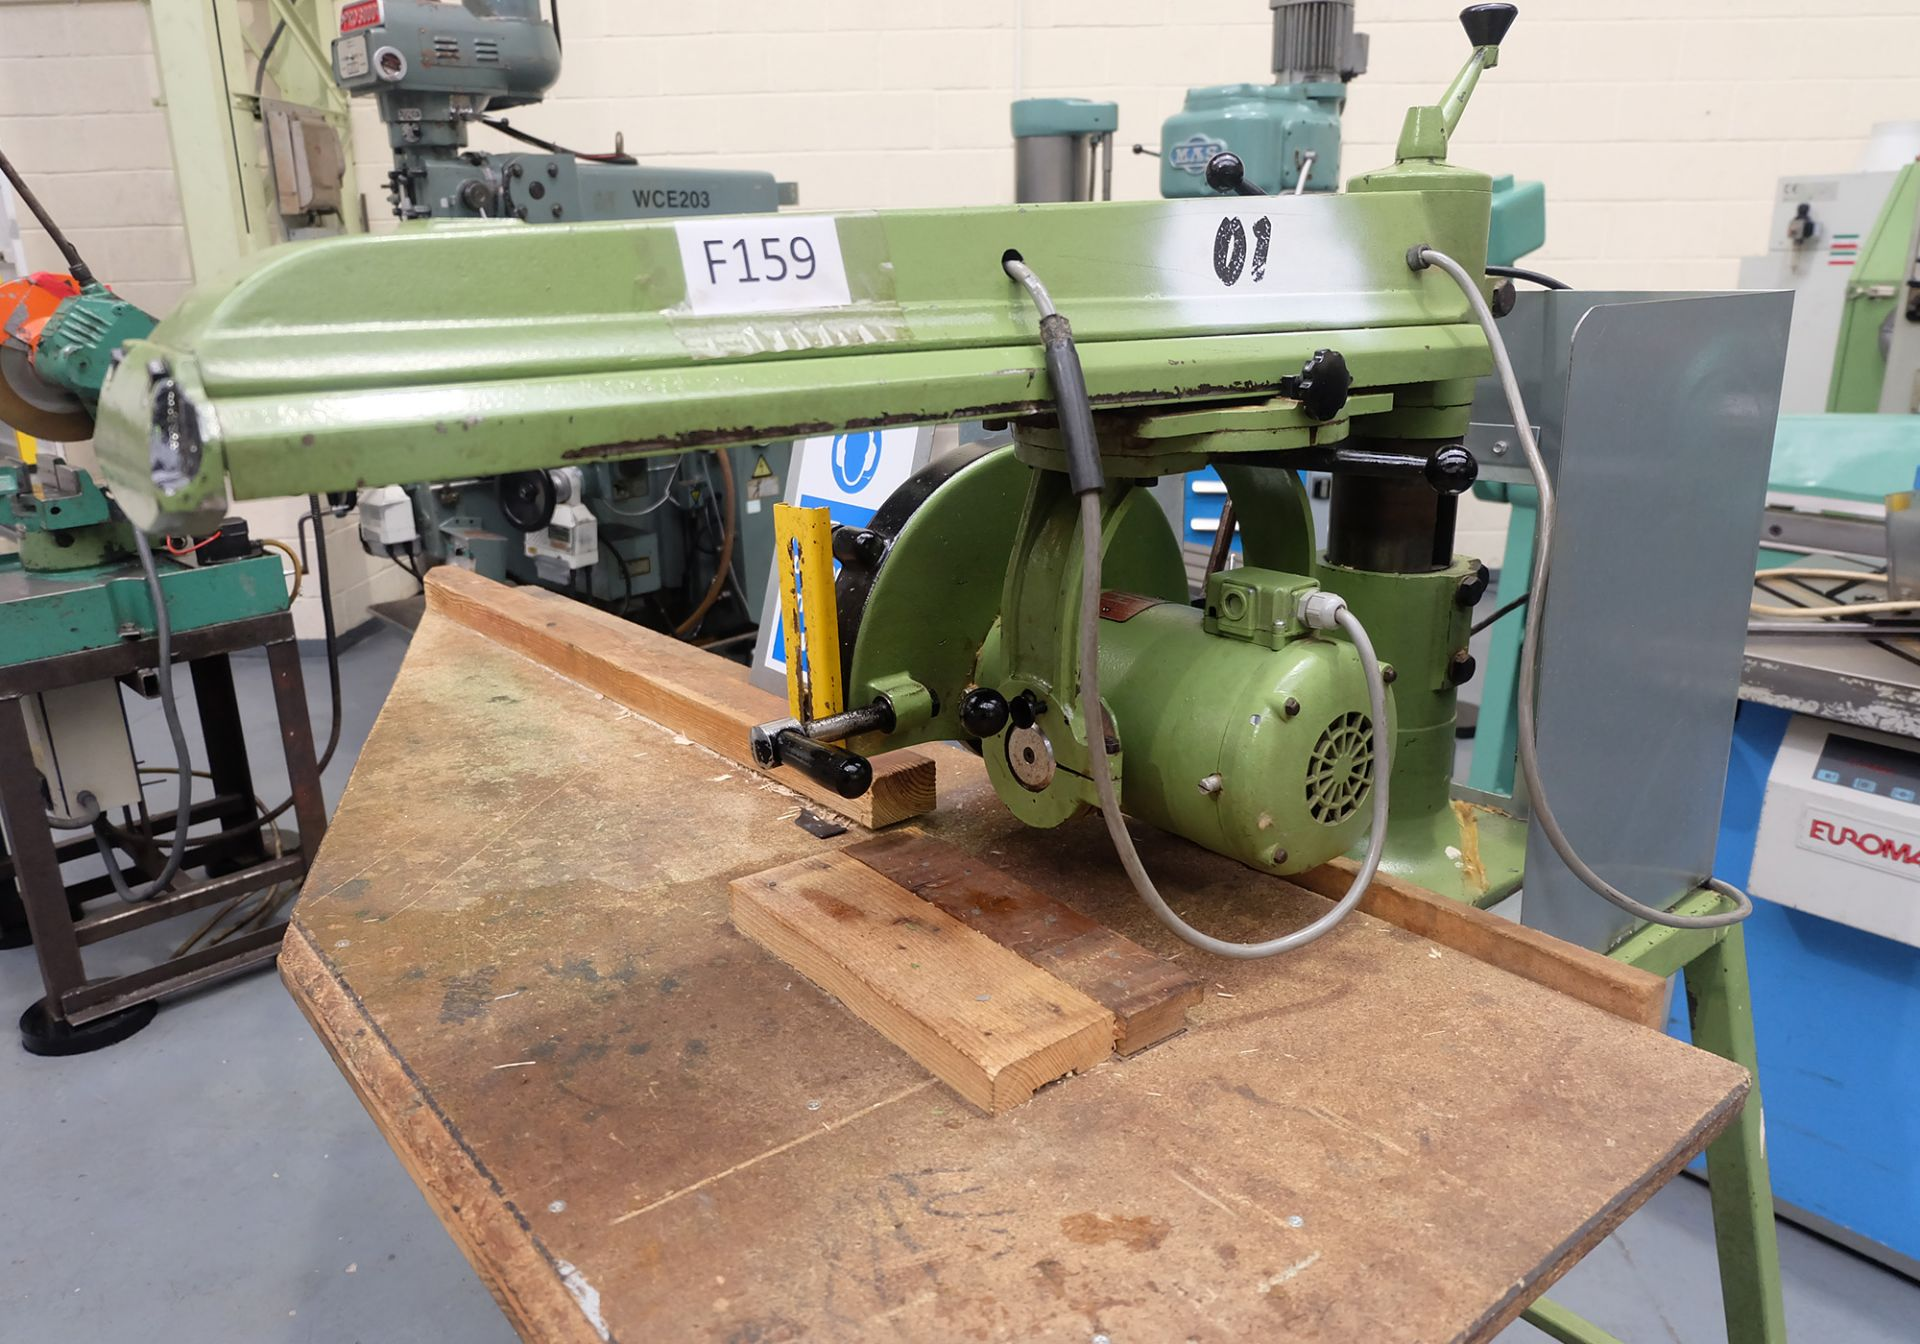 Multico Model C2/3 Radial Wood Saw. Swivelling/Tilting Cross Cut Timber Sawing Machine. - Image 2 of 5